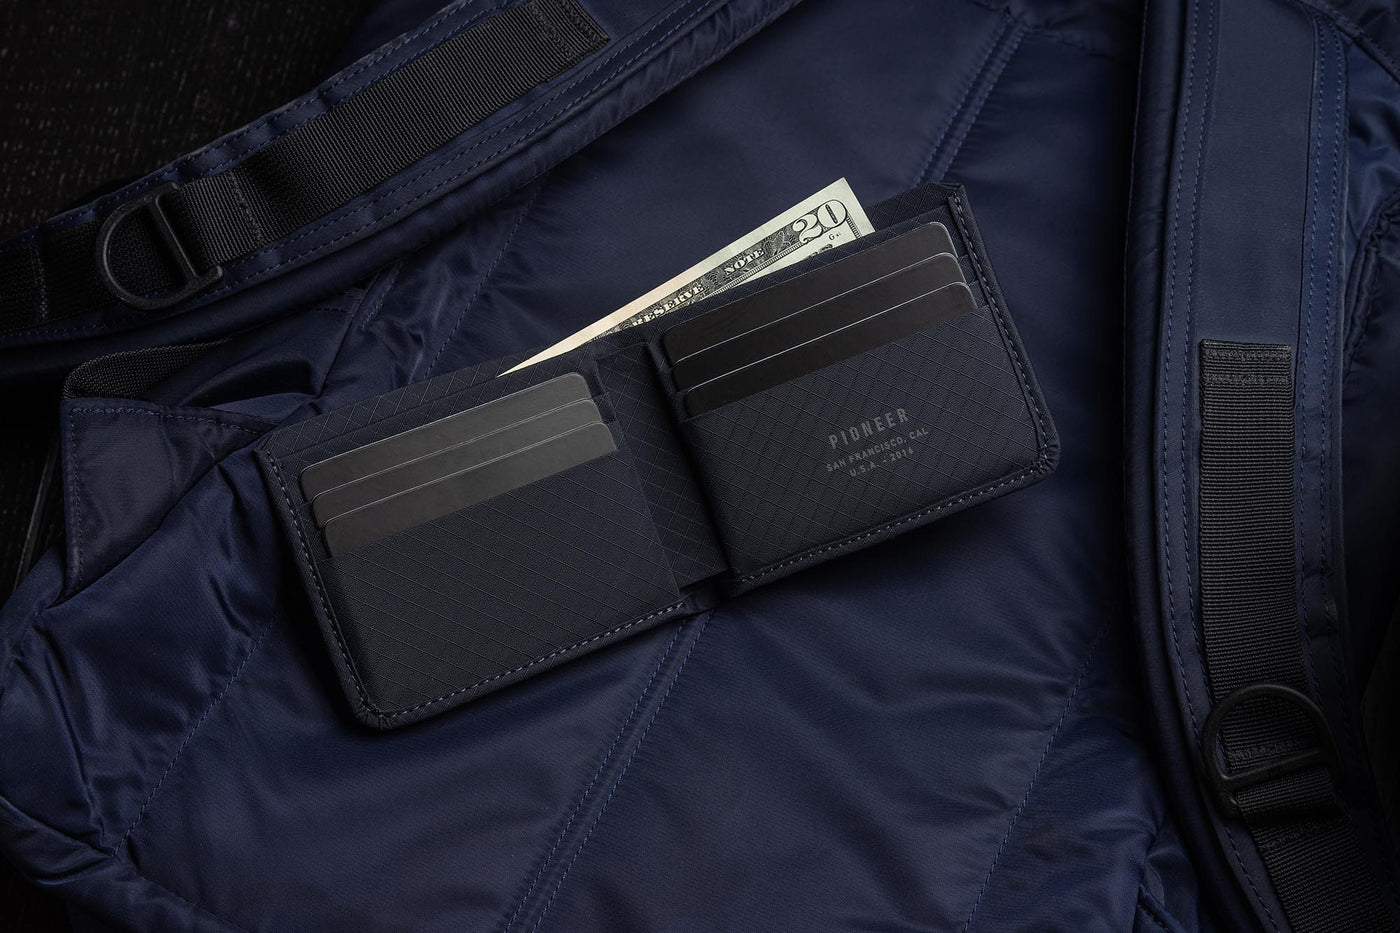 Pioneer division billfold wallet with cash navy sitting on backpack